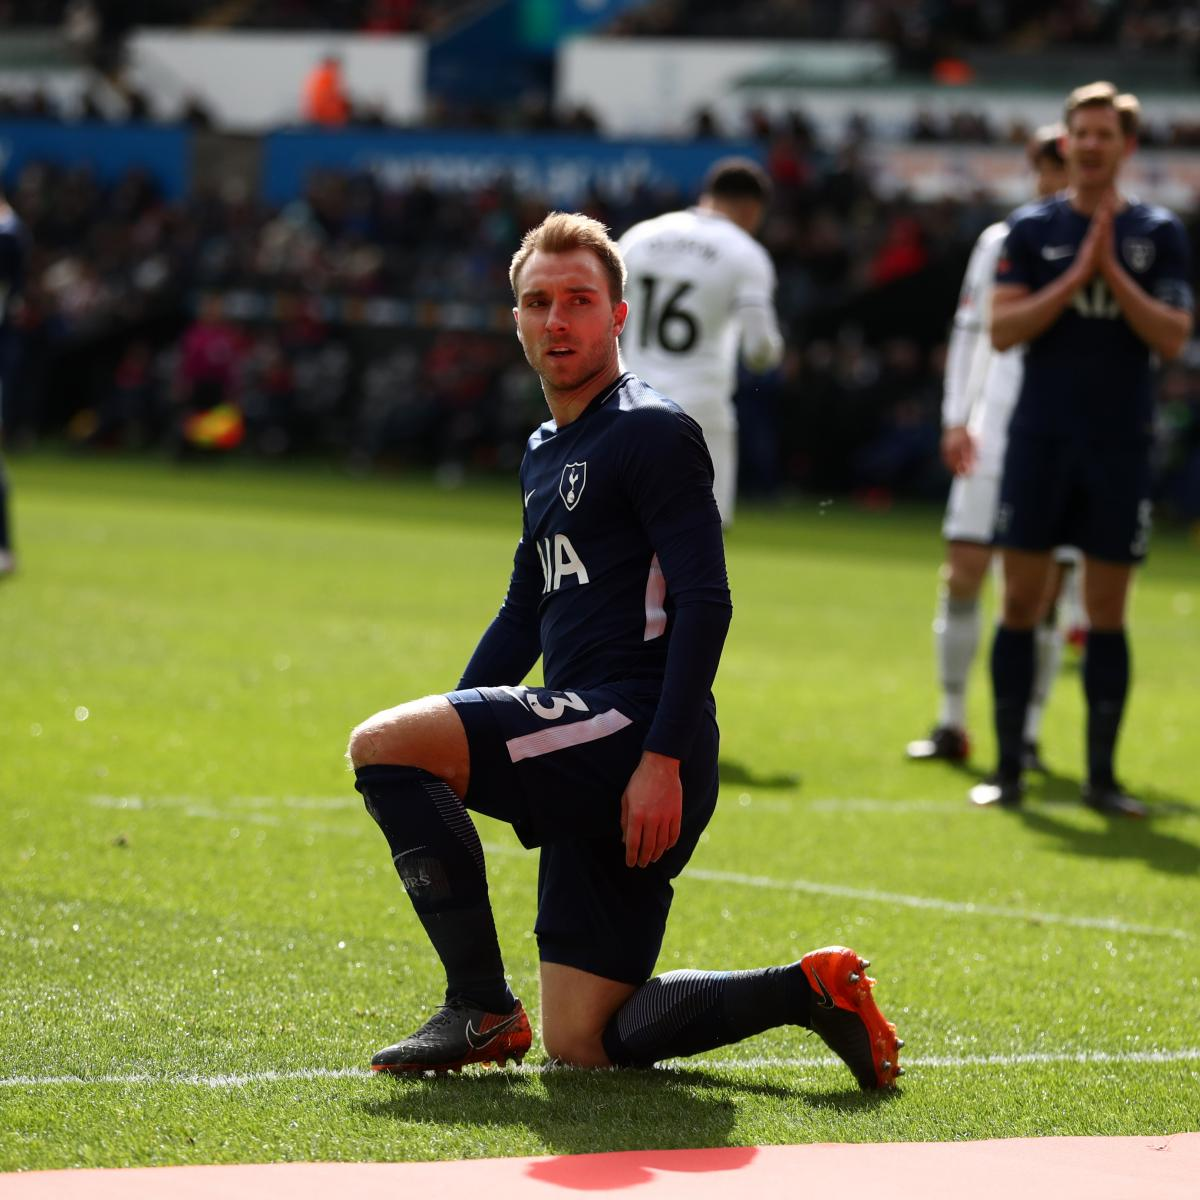 Christian Eriksen Insists He Is 'Very Happy' At Tottenham